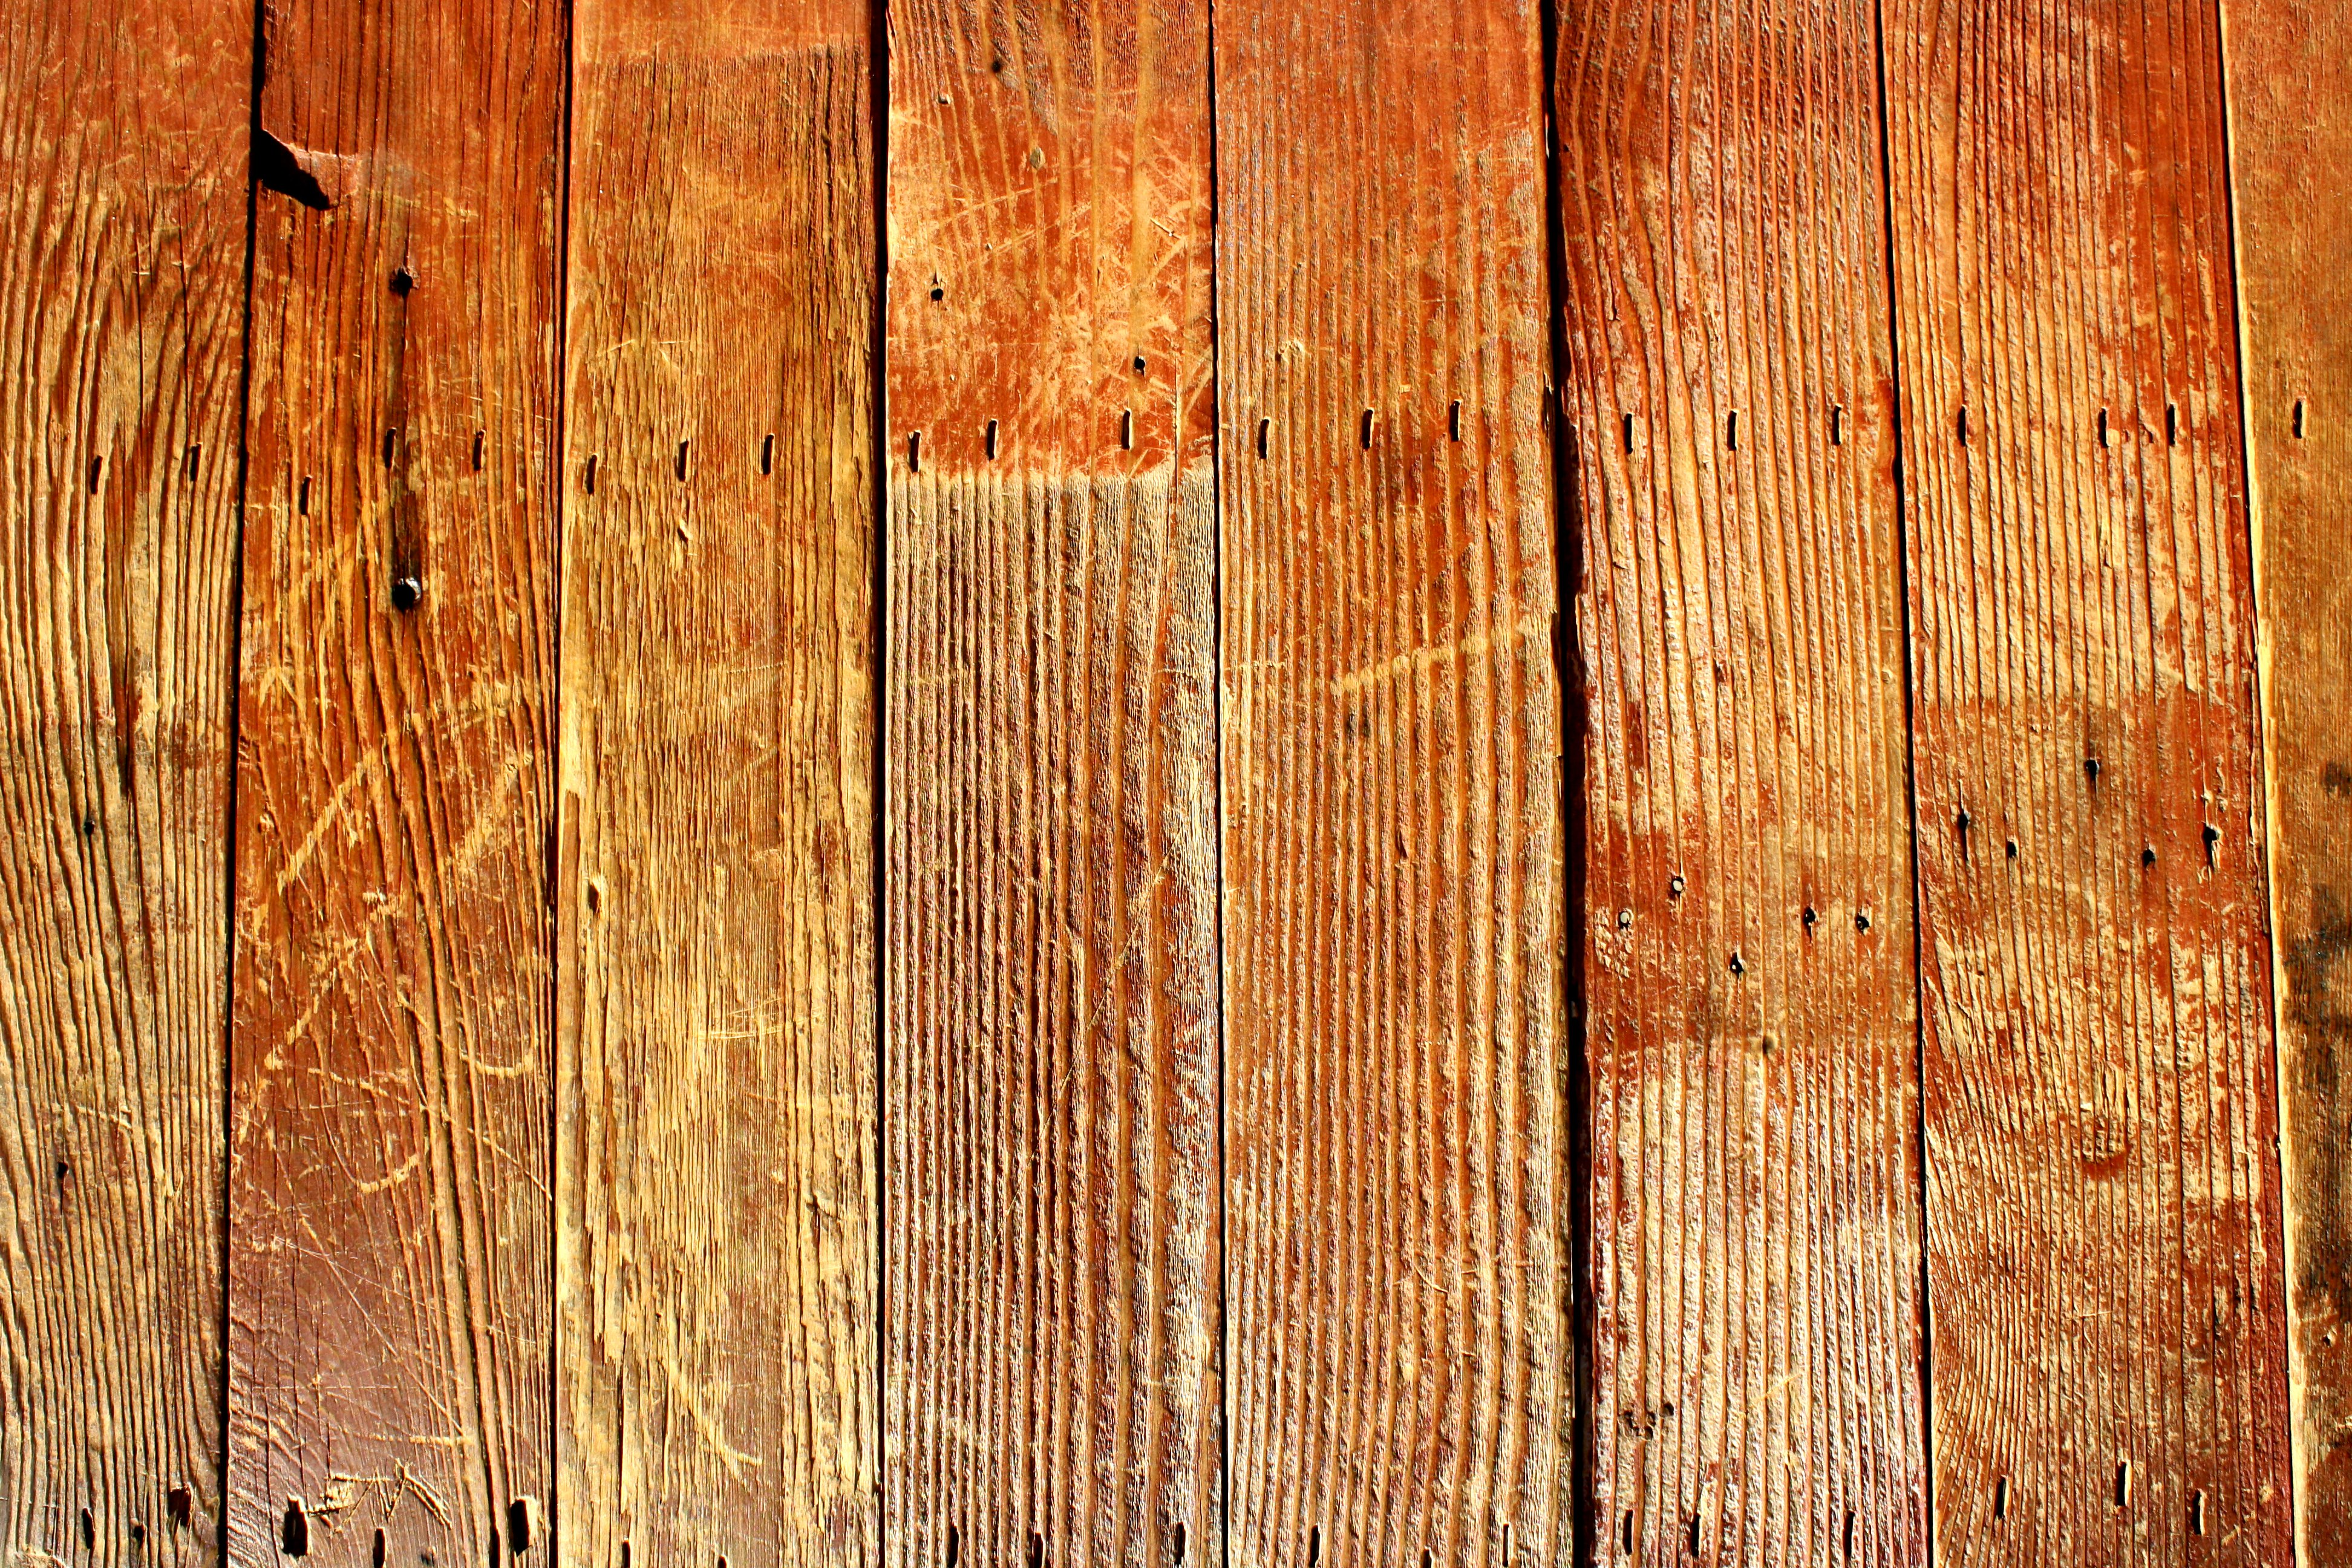 Old Wood Board ~ Scratched old wooden boards texture picture free